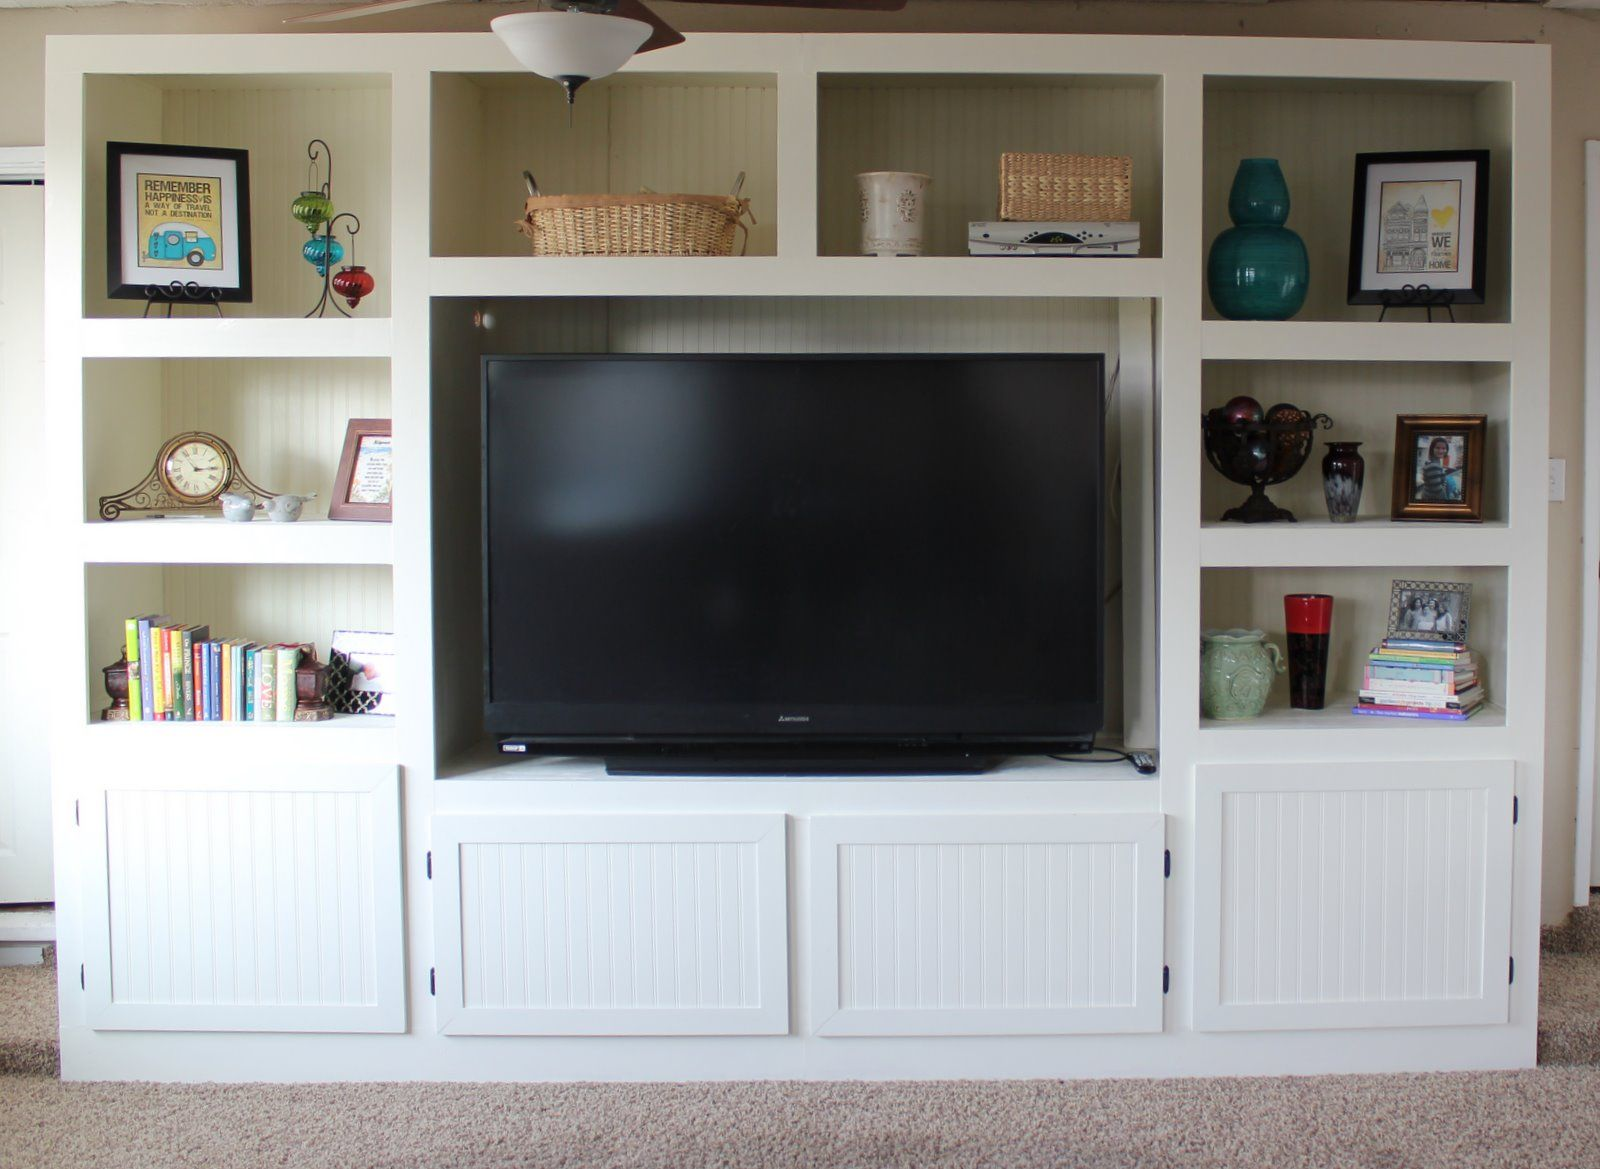 Built In Entertainment Center Design Ideas custom built entertainment center wwwmattgausdesignscom Living Room Renovation With Diy Entertainment Center For Flat Screen Tv